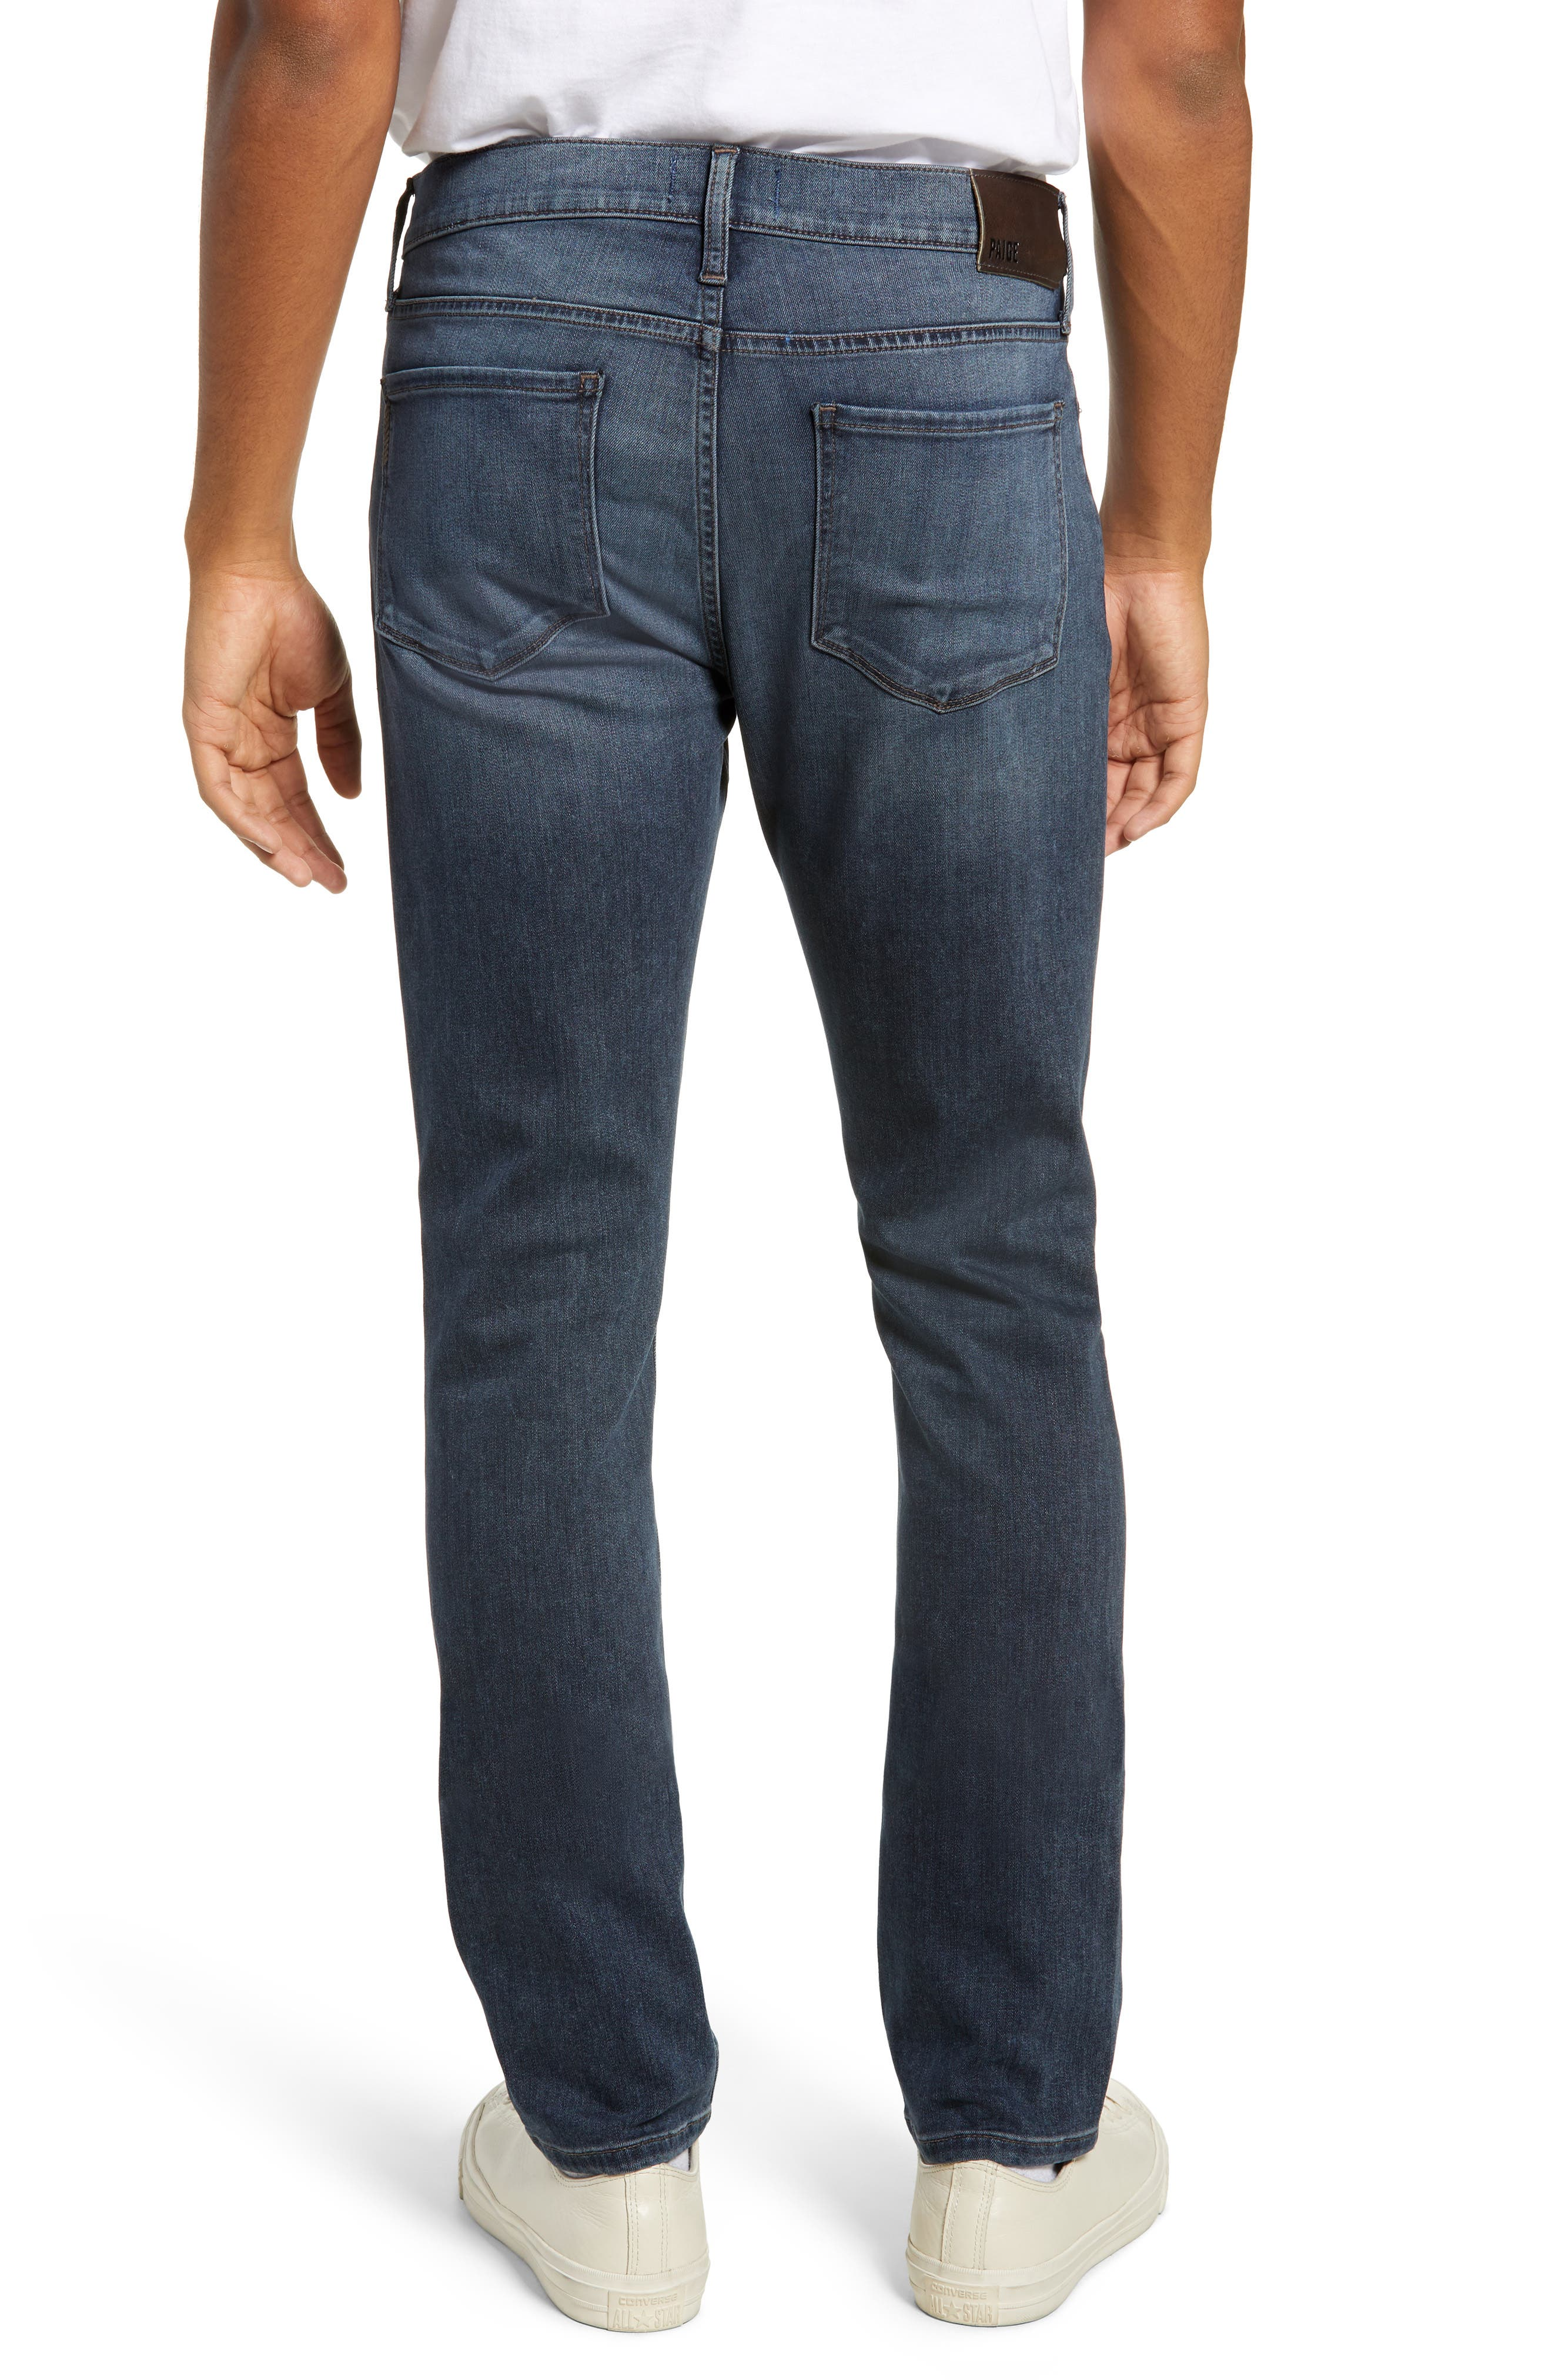 PAIGE,                             Transcend - Federal Slim Straight Leg Jeans,                             Alternate thumbnail 2, color,                             GARNER